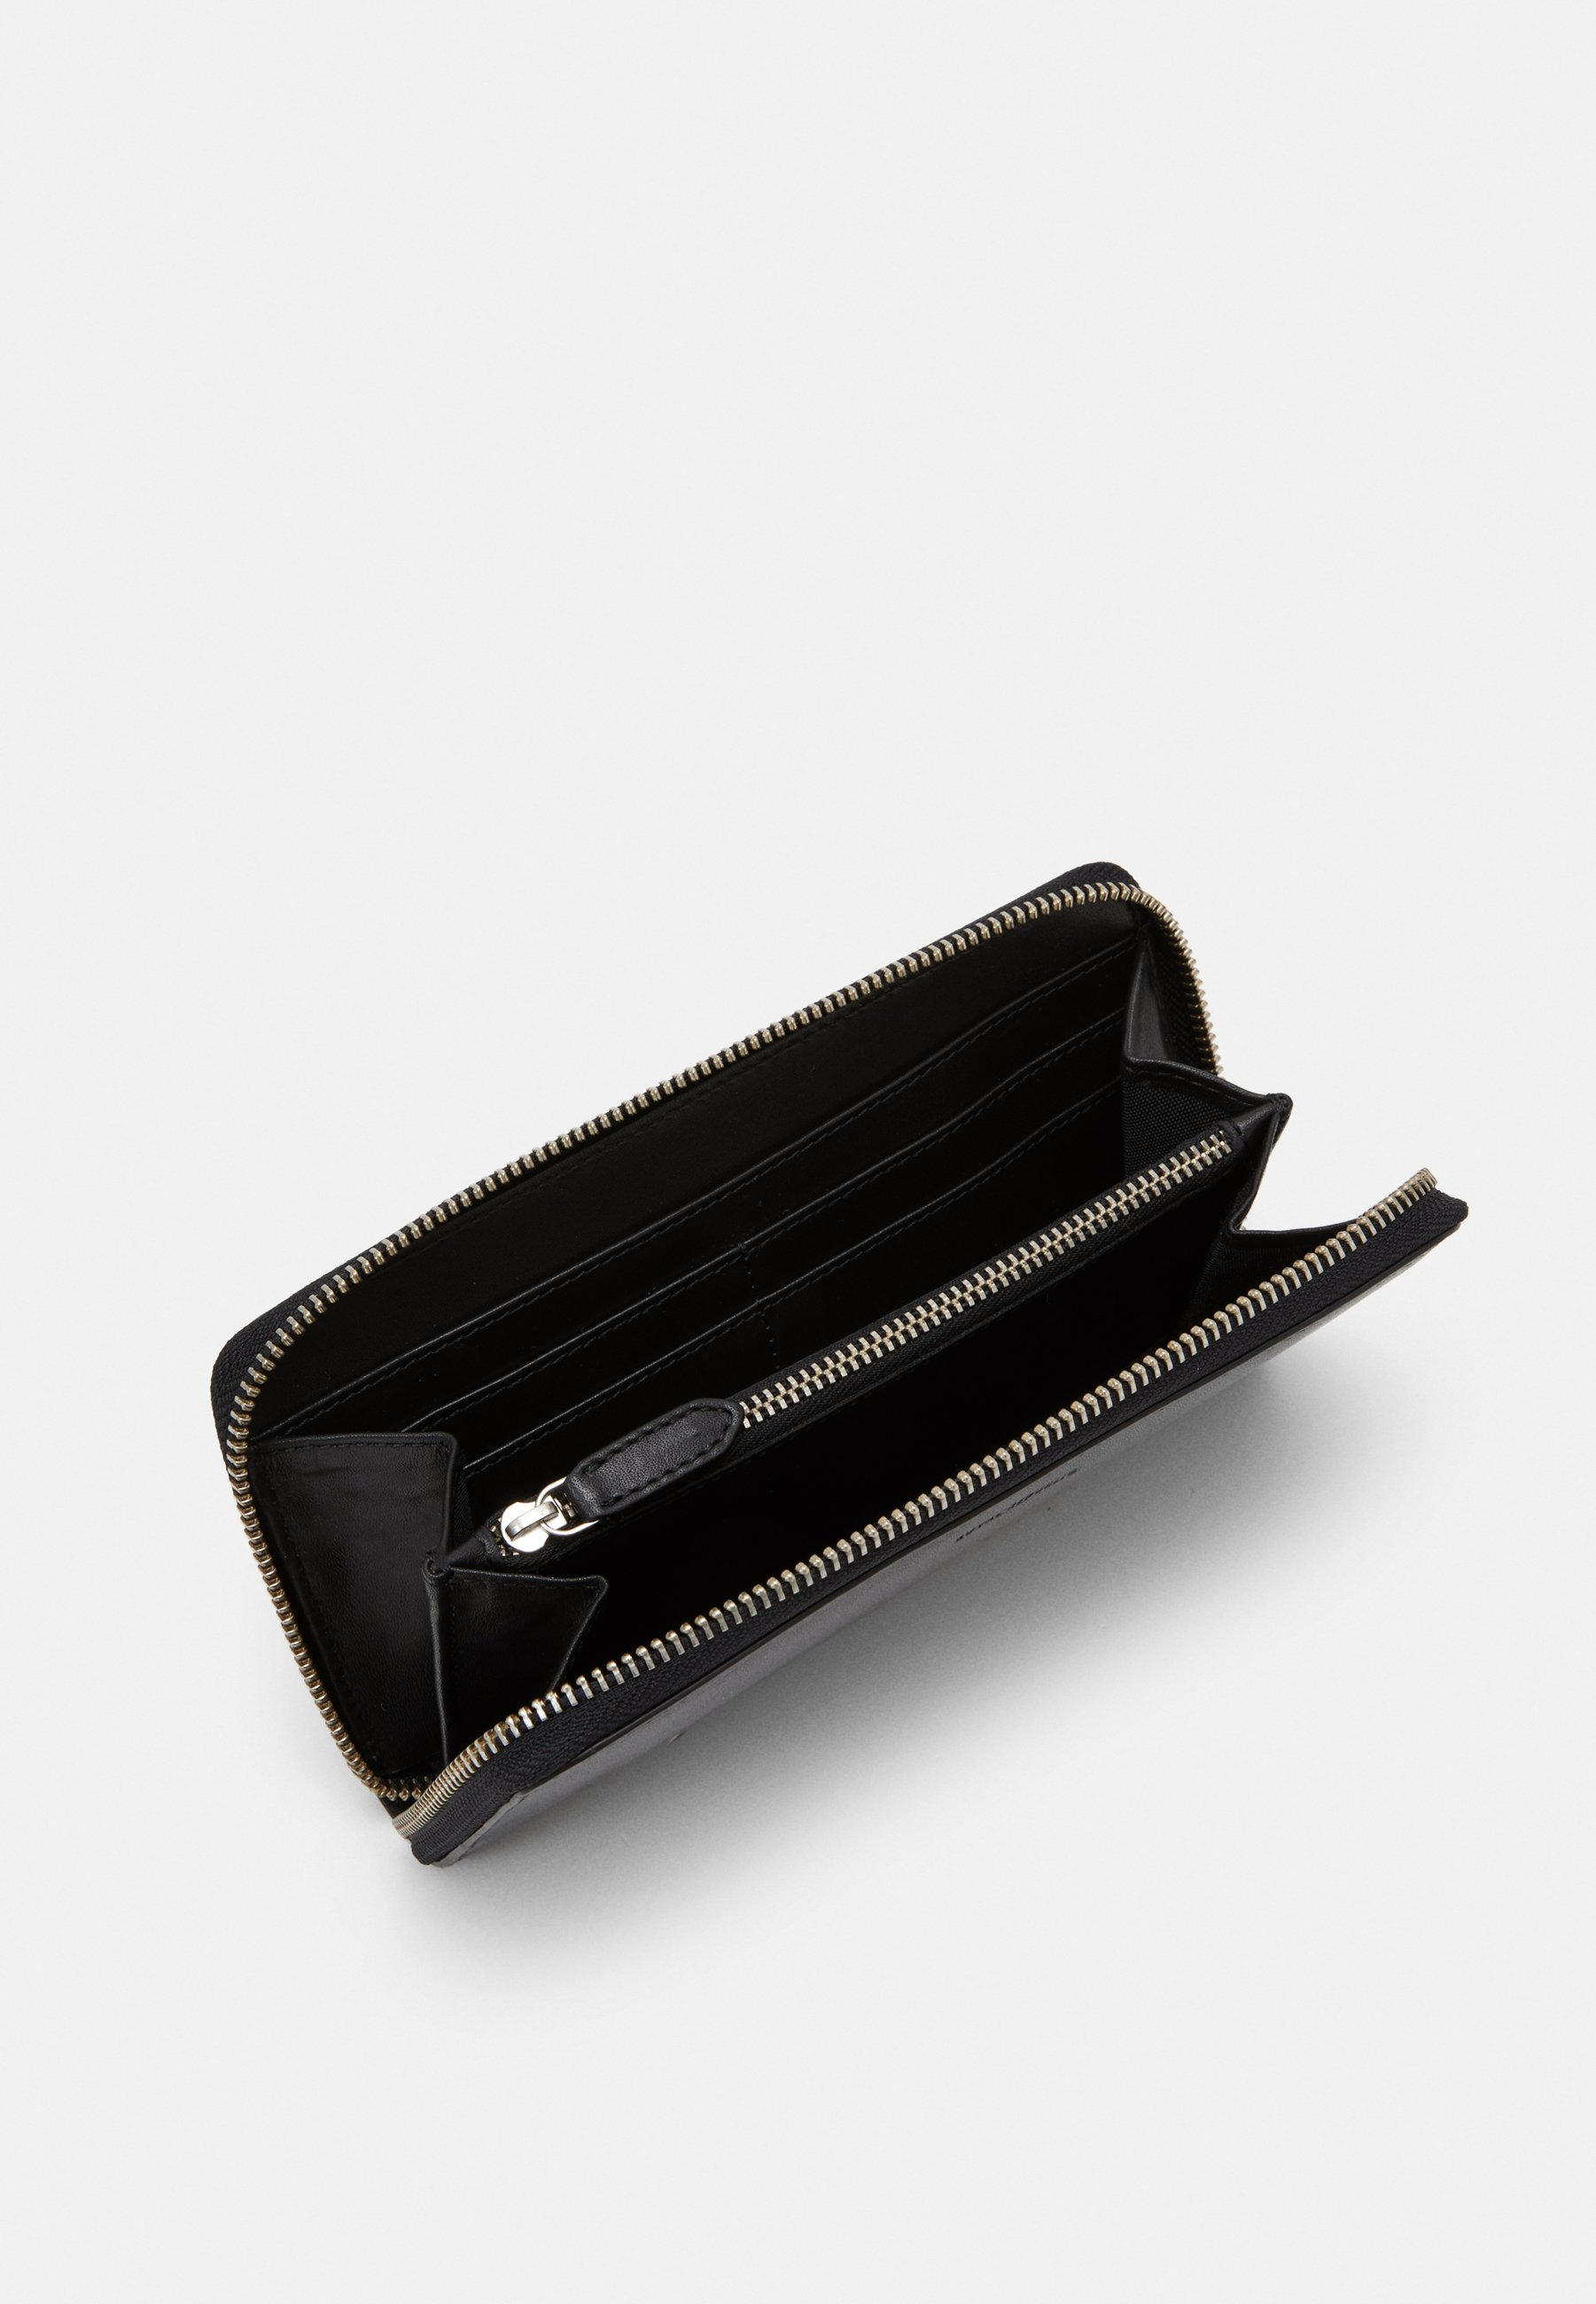 Royal RepubliQ ELITE WALLET - Lommebok - black/svart jXyE2pSU36fe5D1